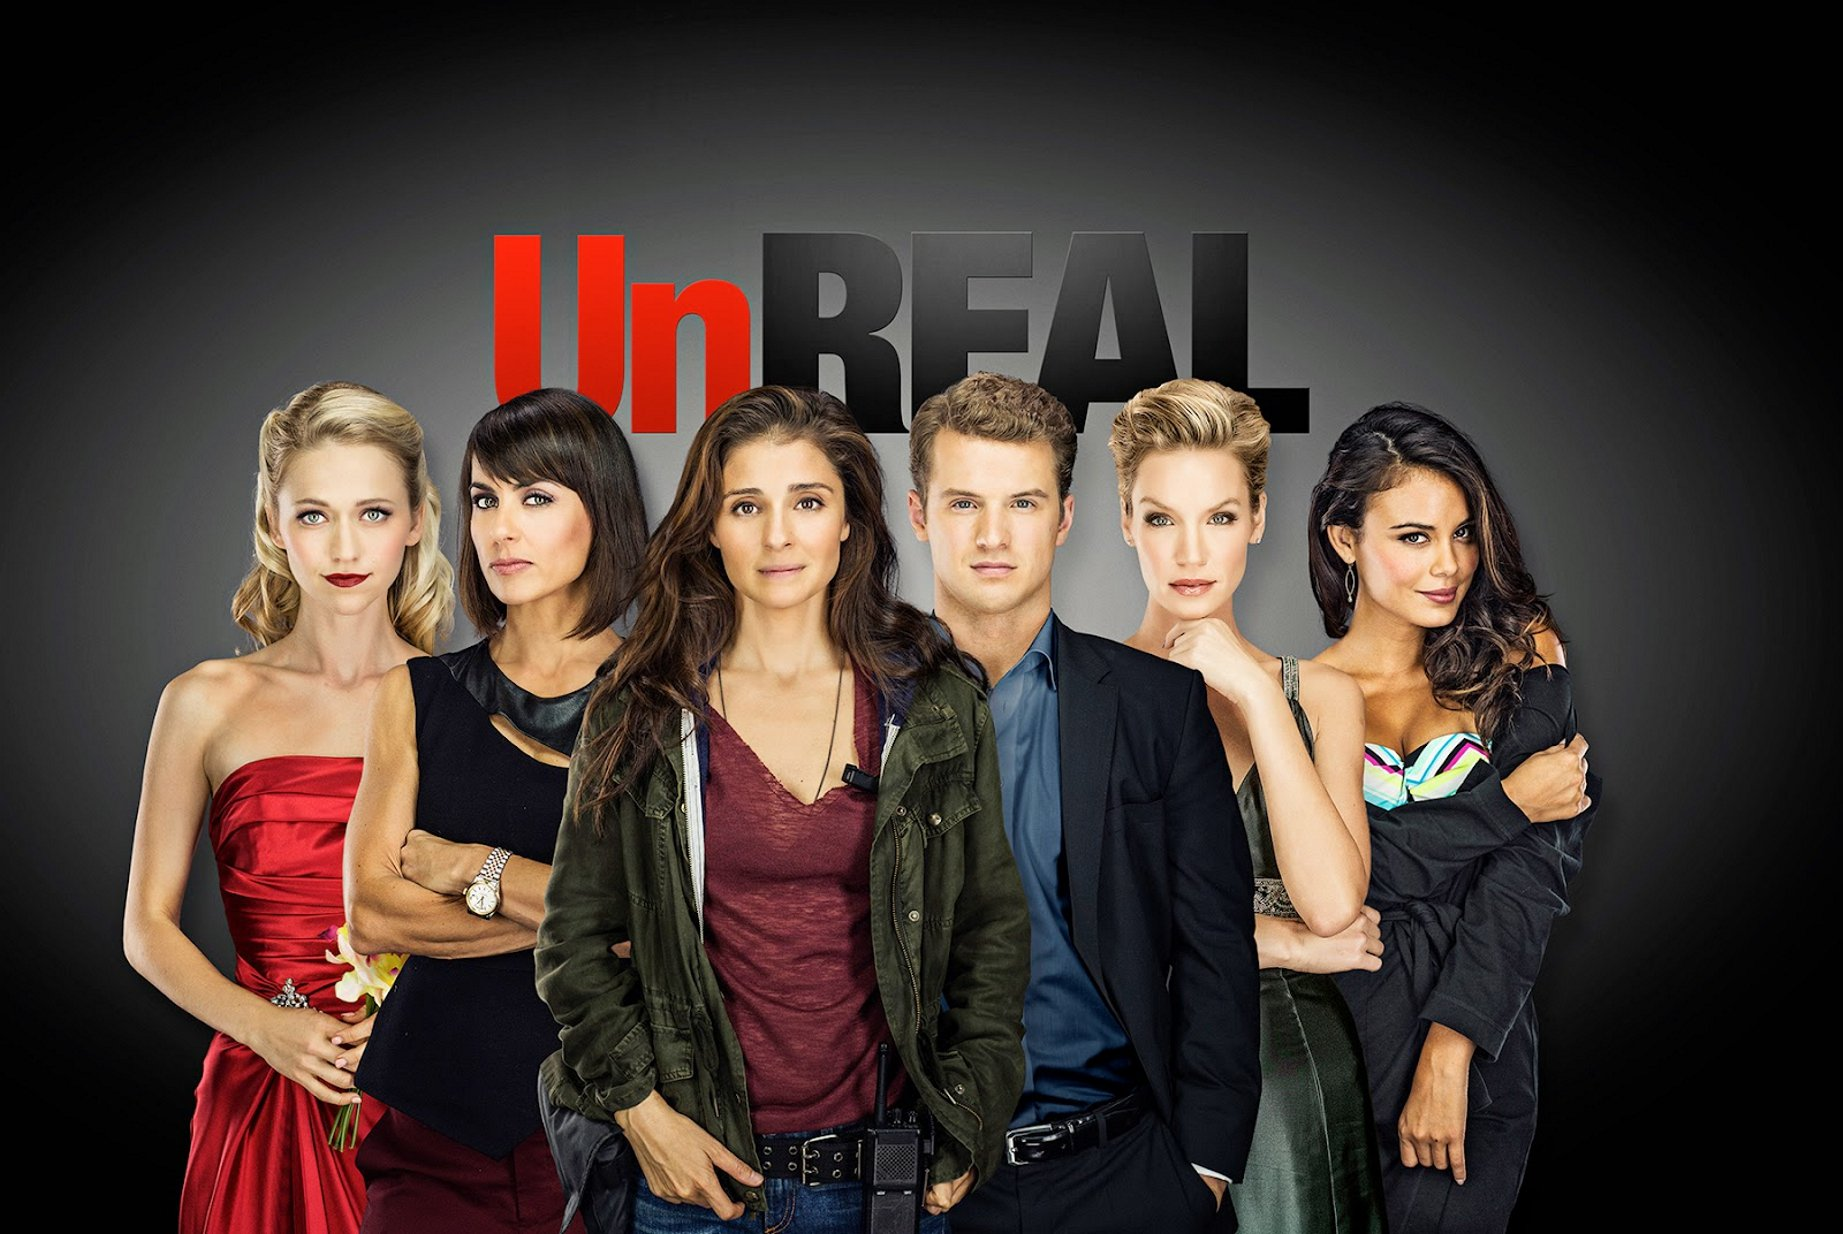 Devious Maids et UnREAL sur Lifetime en juin